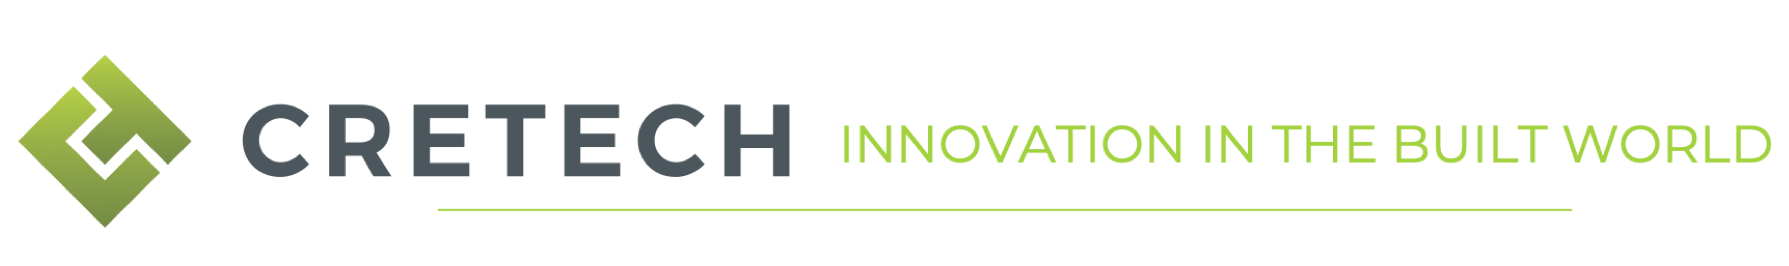 CREtech: Innovation in the Built World